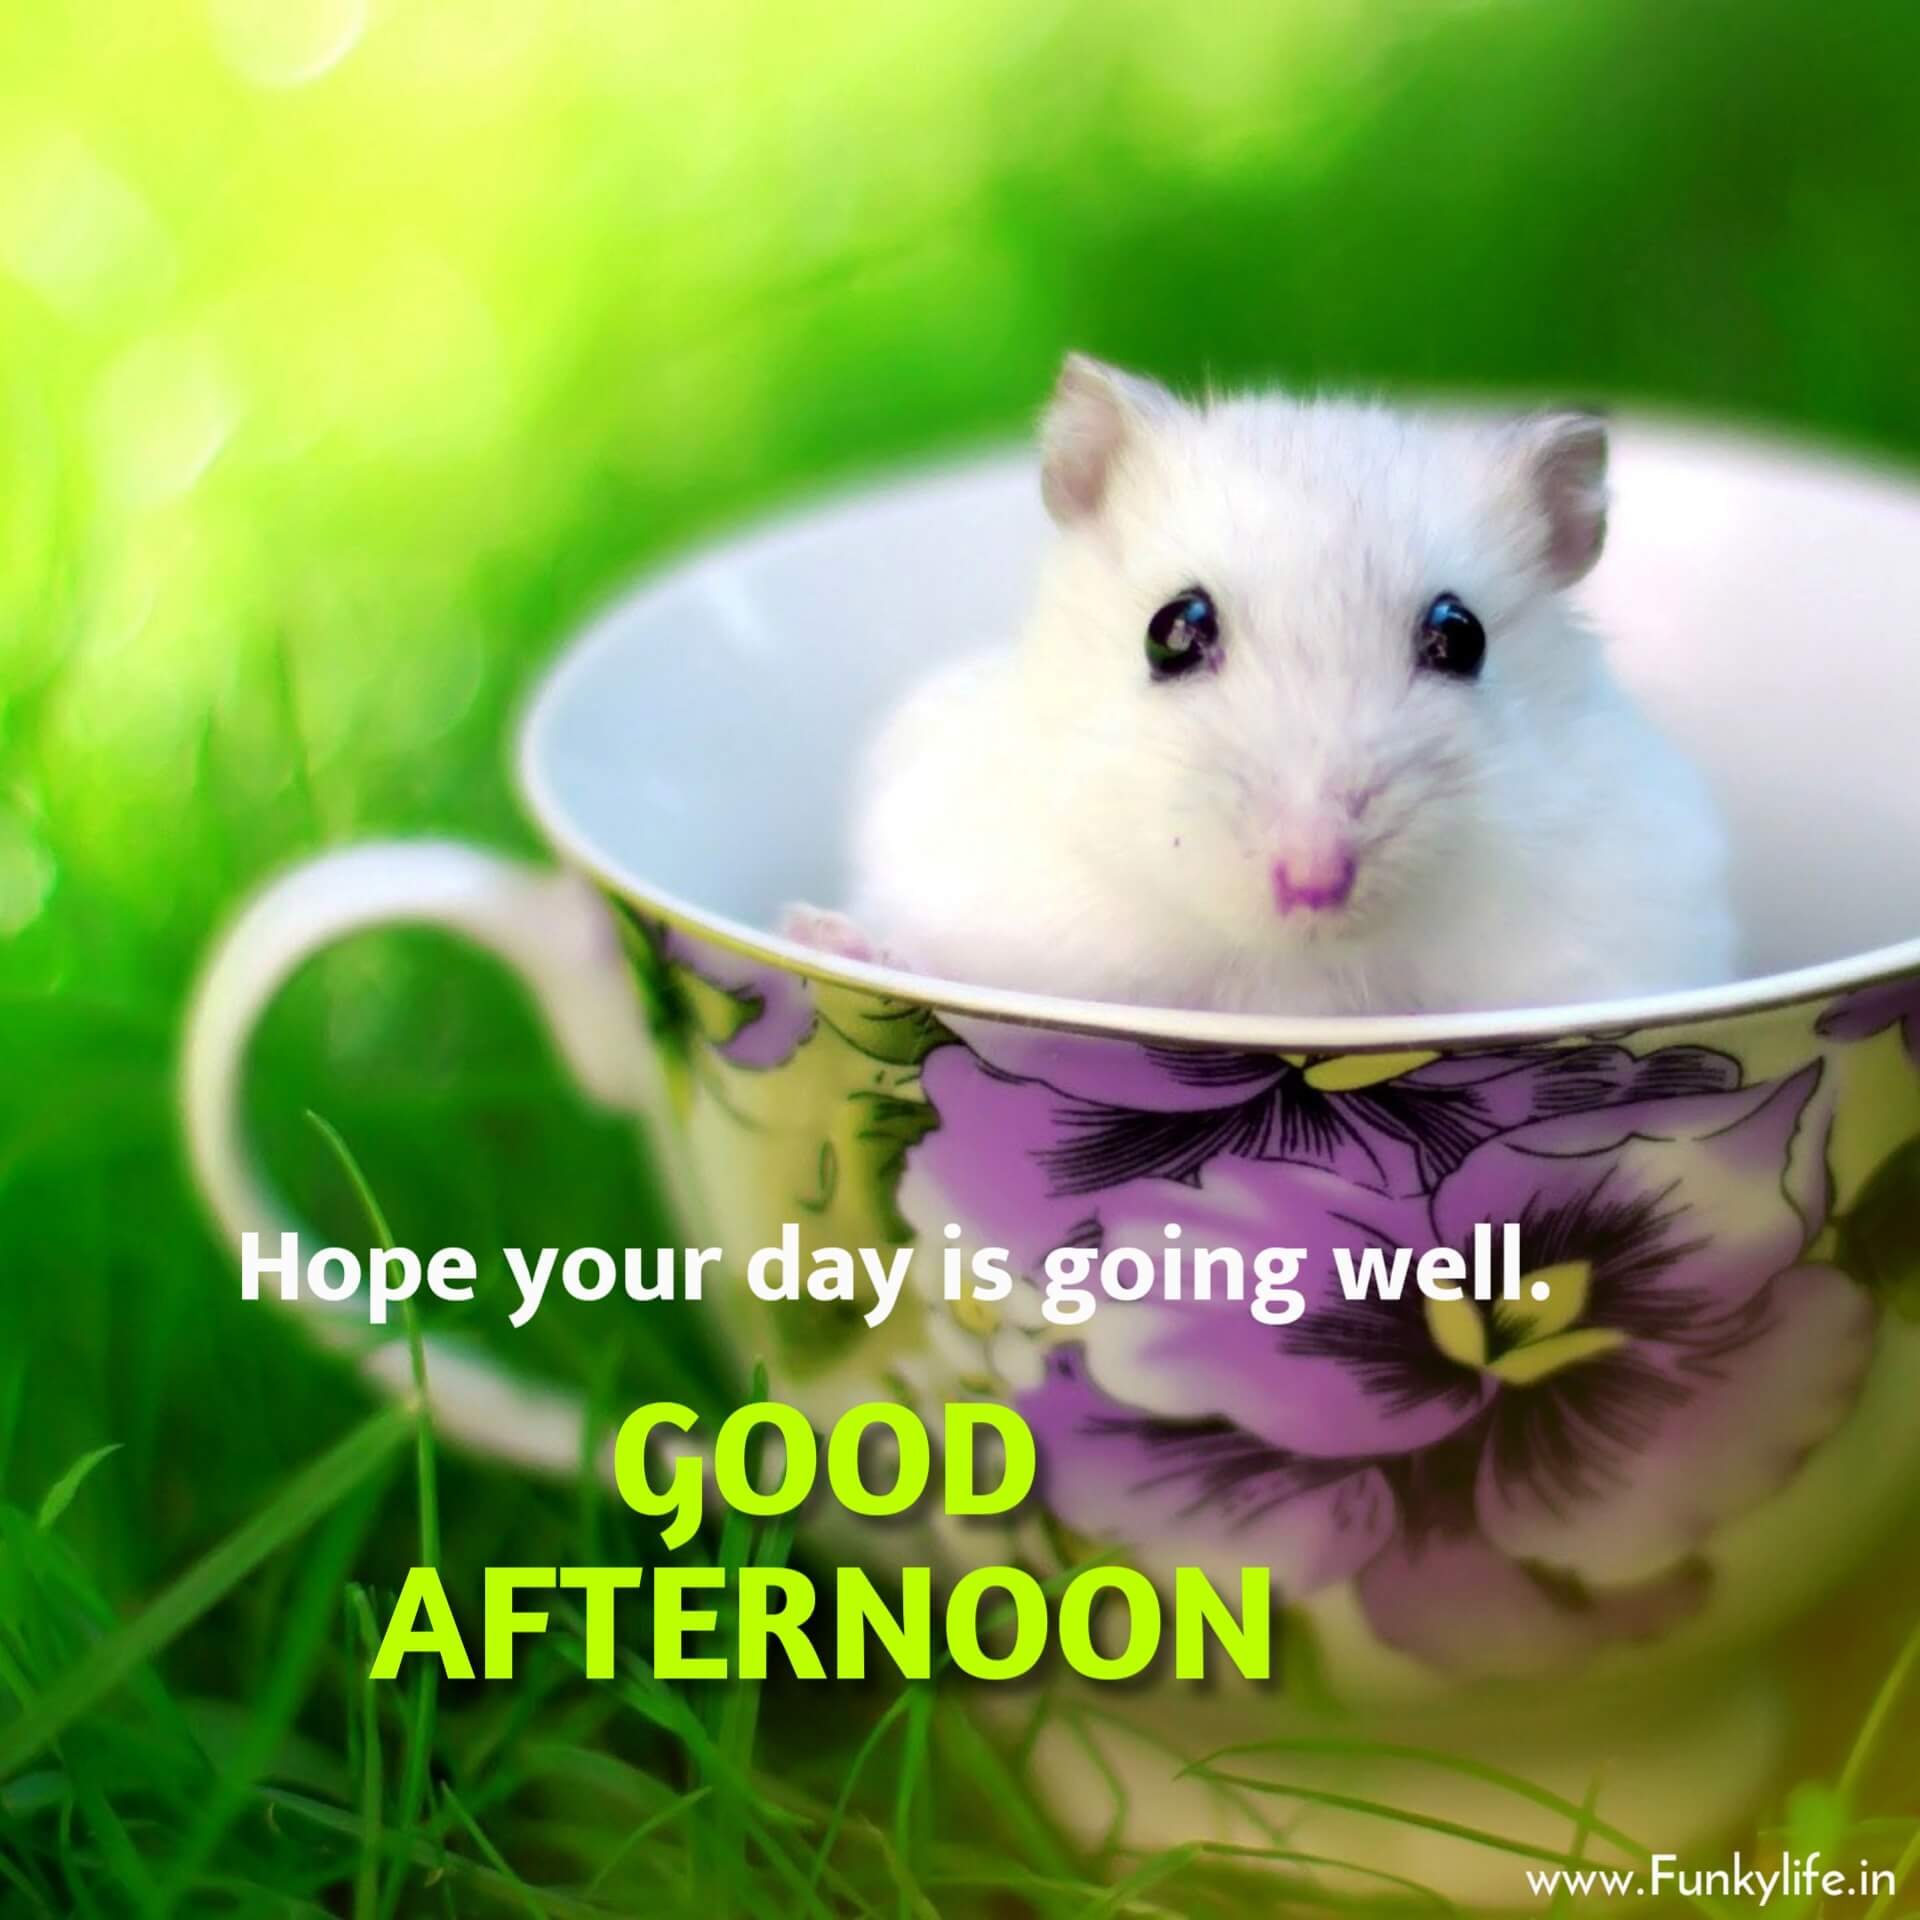 Cute Rat Good Afternoon Image